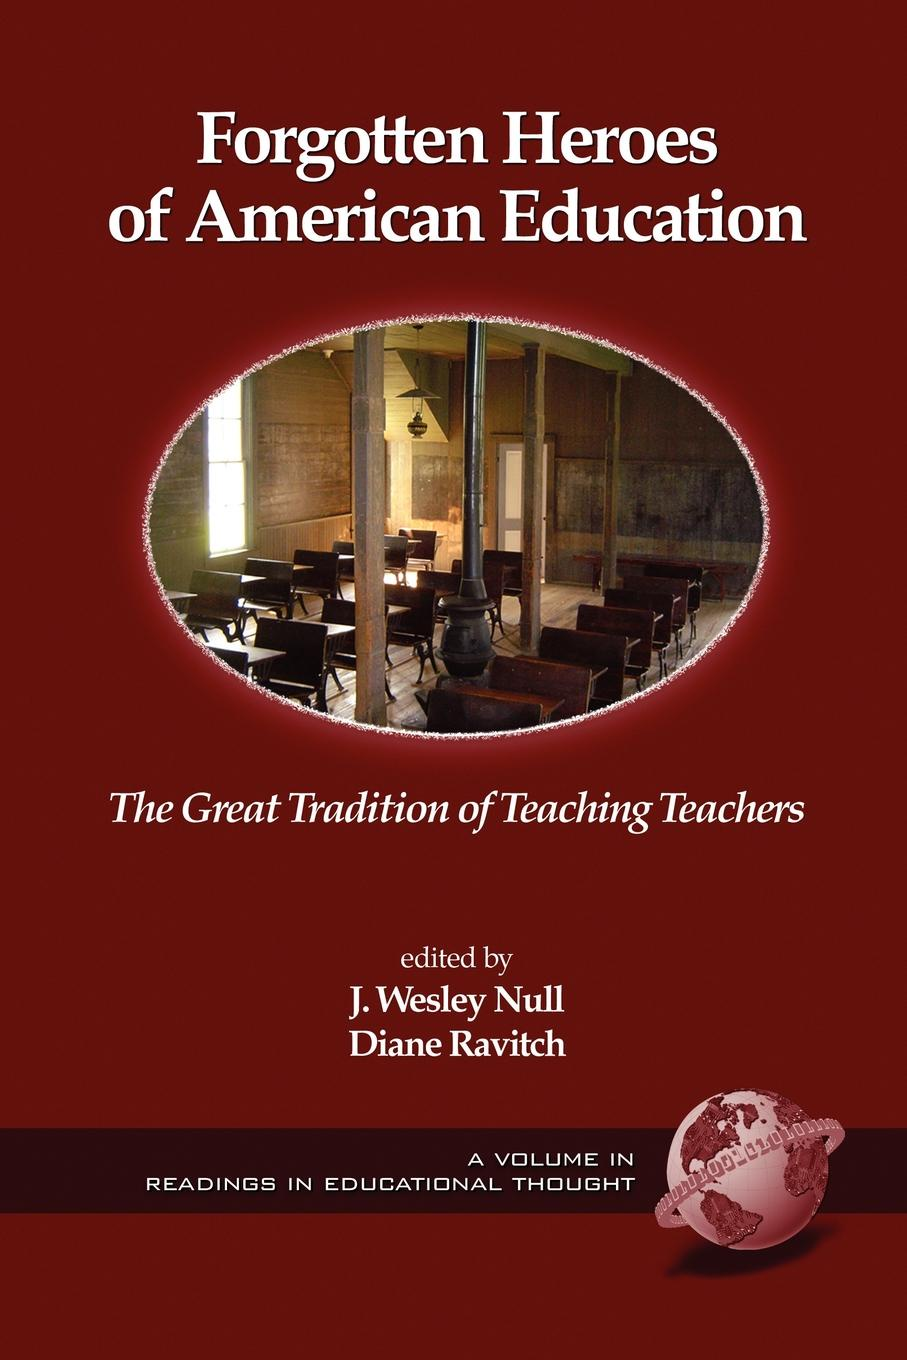 Forgotten Heroes of American Education. The Great Tradition of Teaching Teachers (PB) edward l thorndike the teachers word book 1921